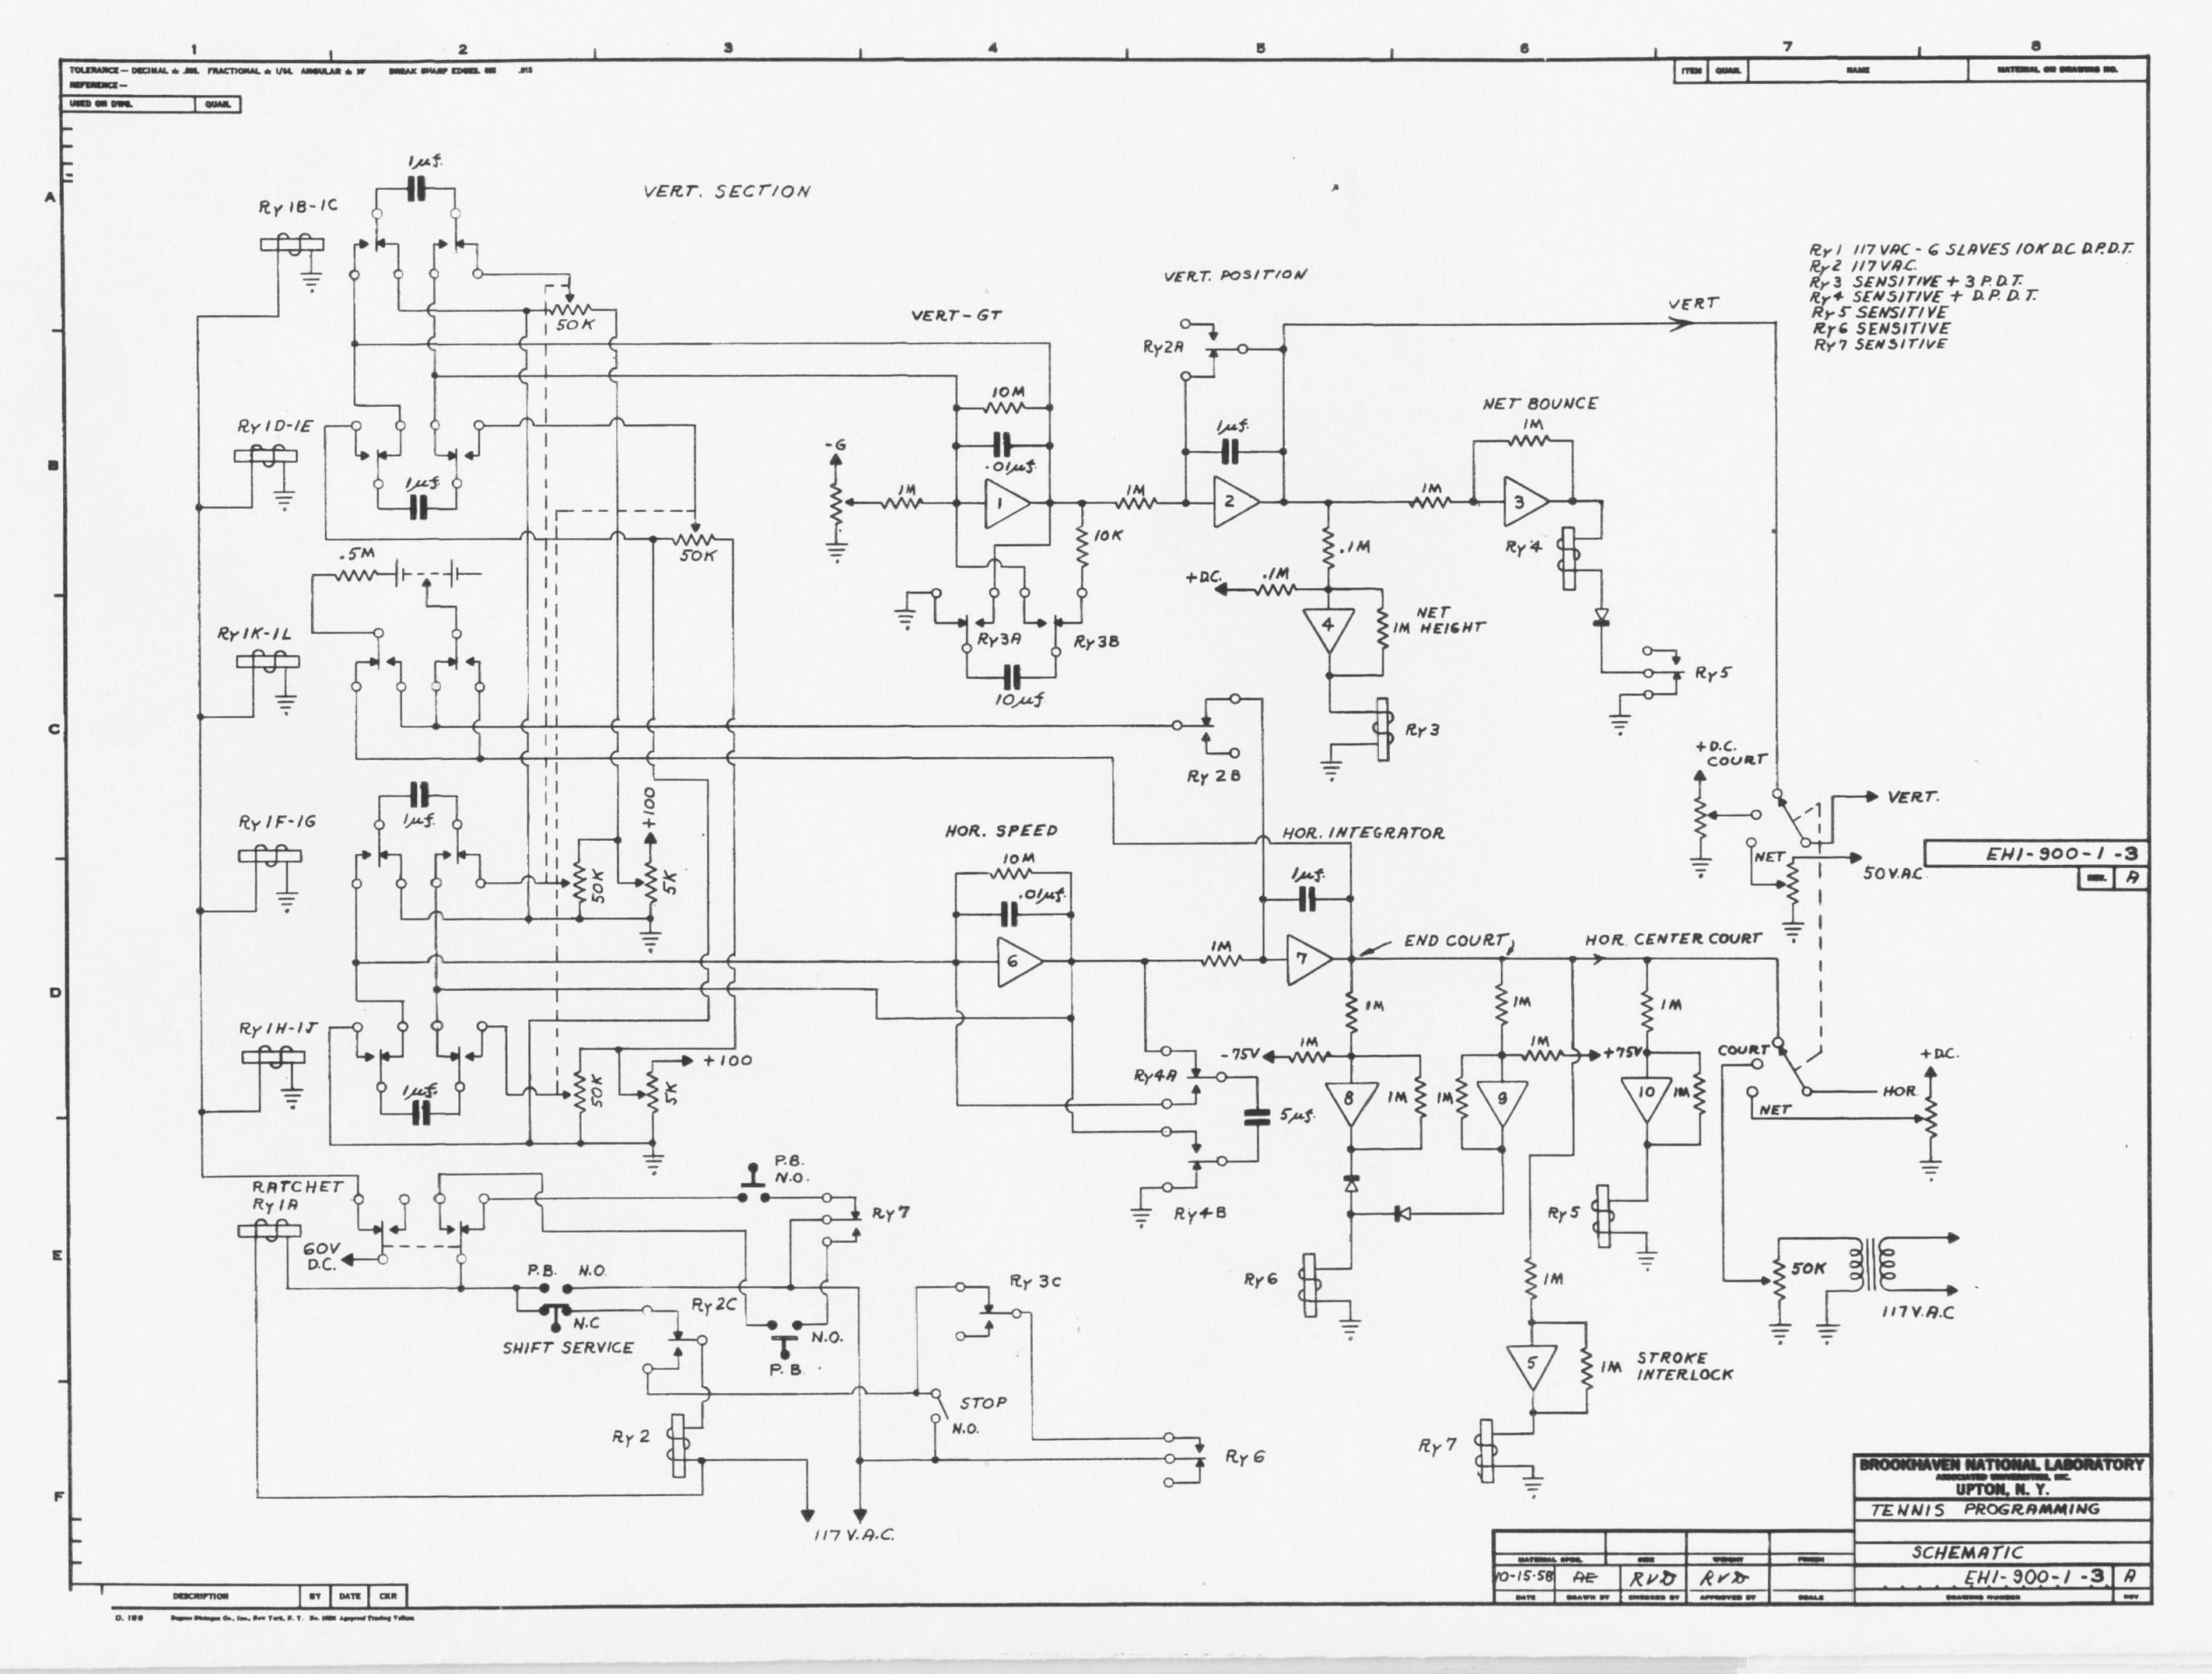 Schematic For Possibly The World S First Video Game